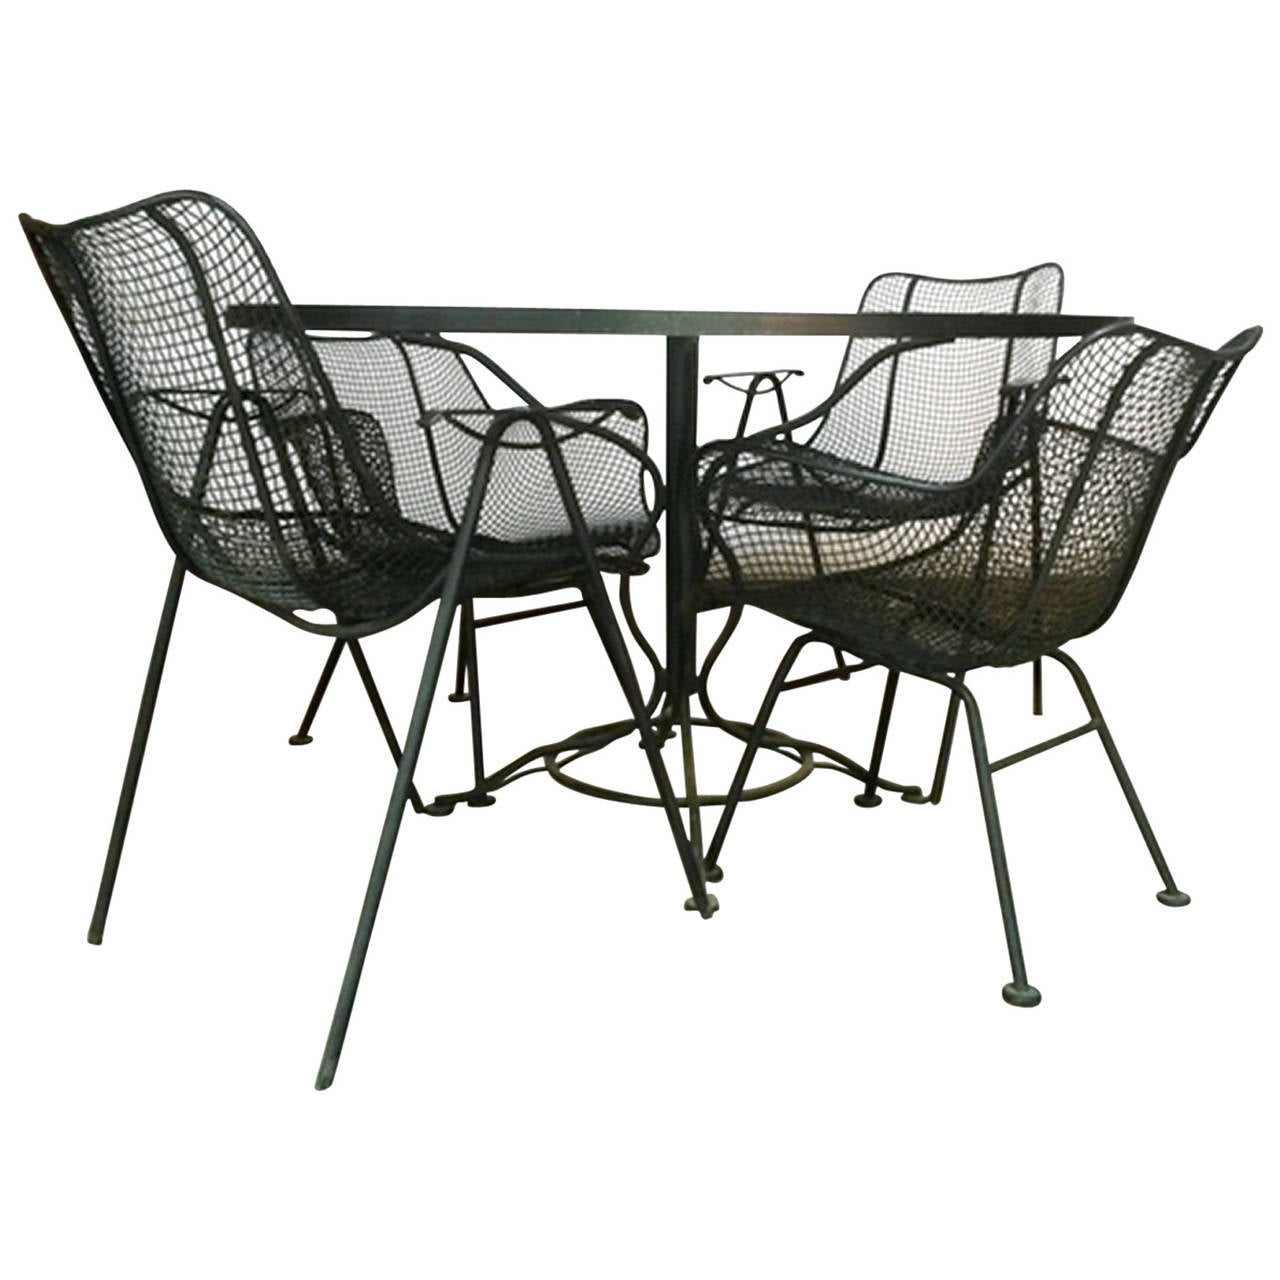 Patio chair glides plastic quantity 16 1 1 2 quot for Outdoor furniture glides